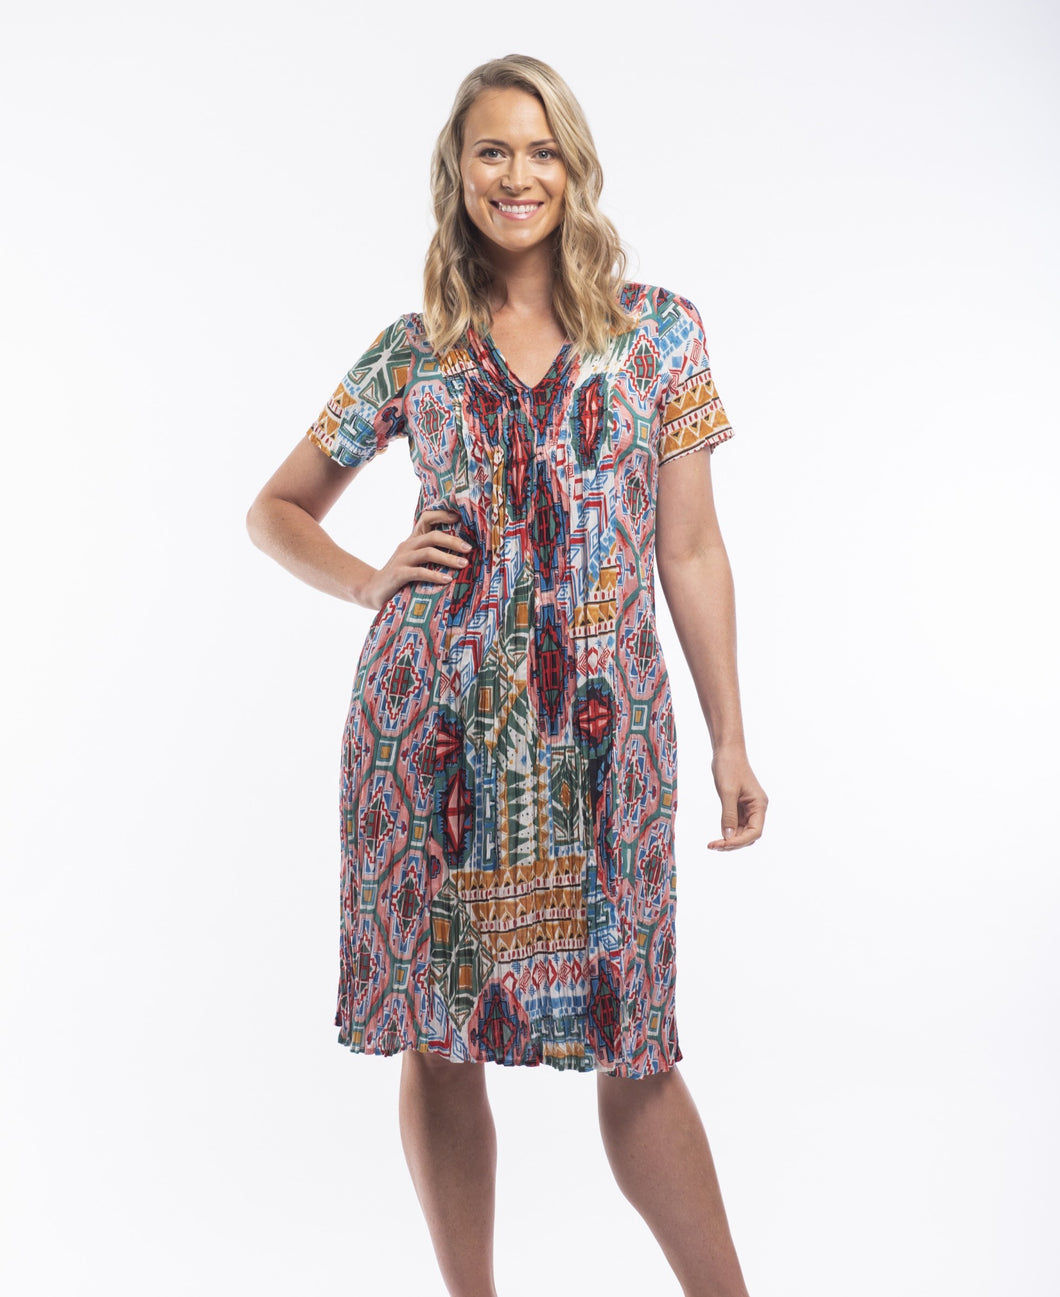 When it comes to the brand Orientique it's all about colour, detail and comfort while still looking modern and stylish. Featuring a V-Neck with pin tucked pleats across the front, loosely flowing to a relaxed body, the colourful eye catching Aztec print will have you dreaming of Summer and paradise. Made from 100% Crinkle Cotton this dress is ideal for those hot summer days.